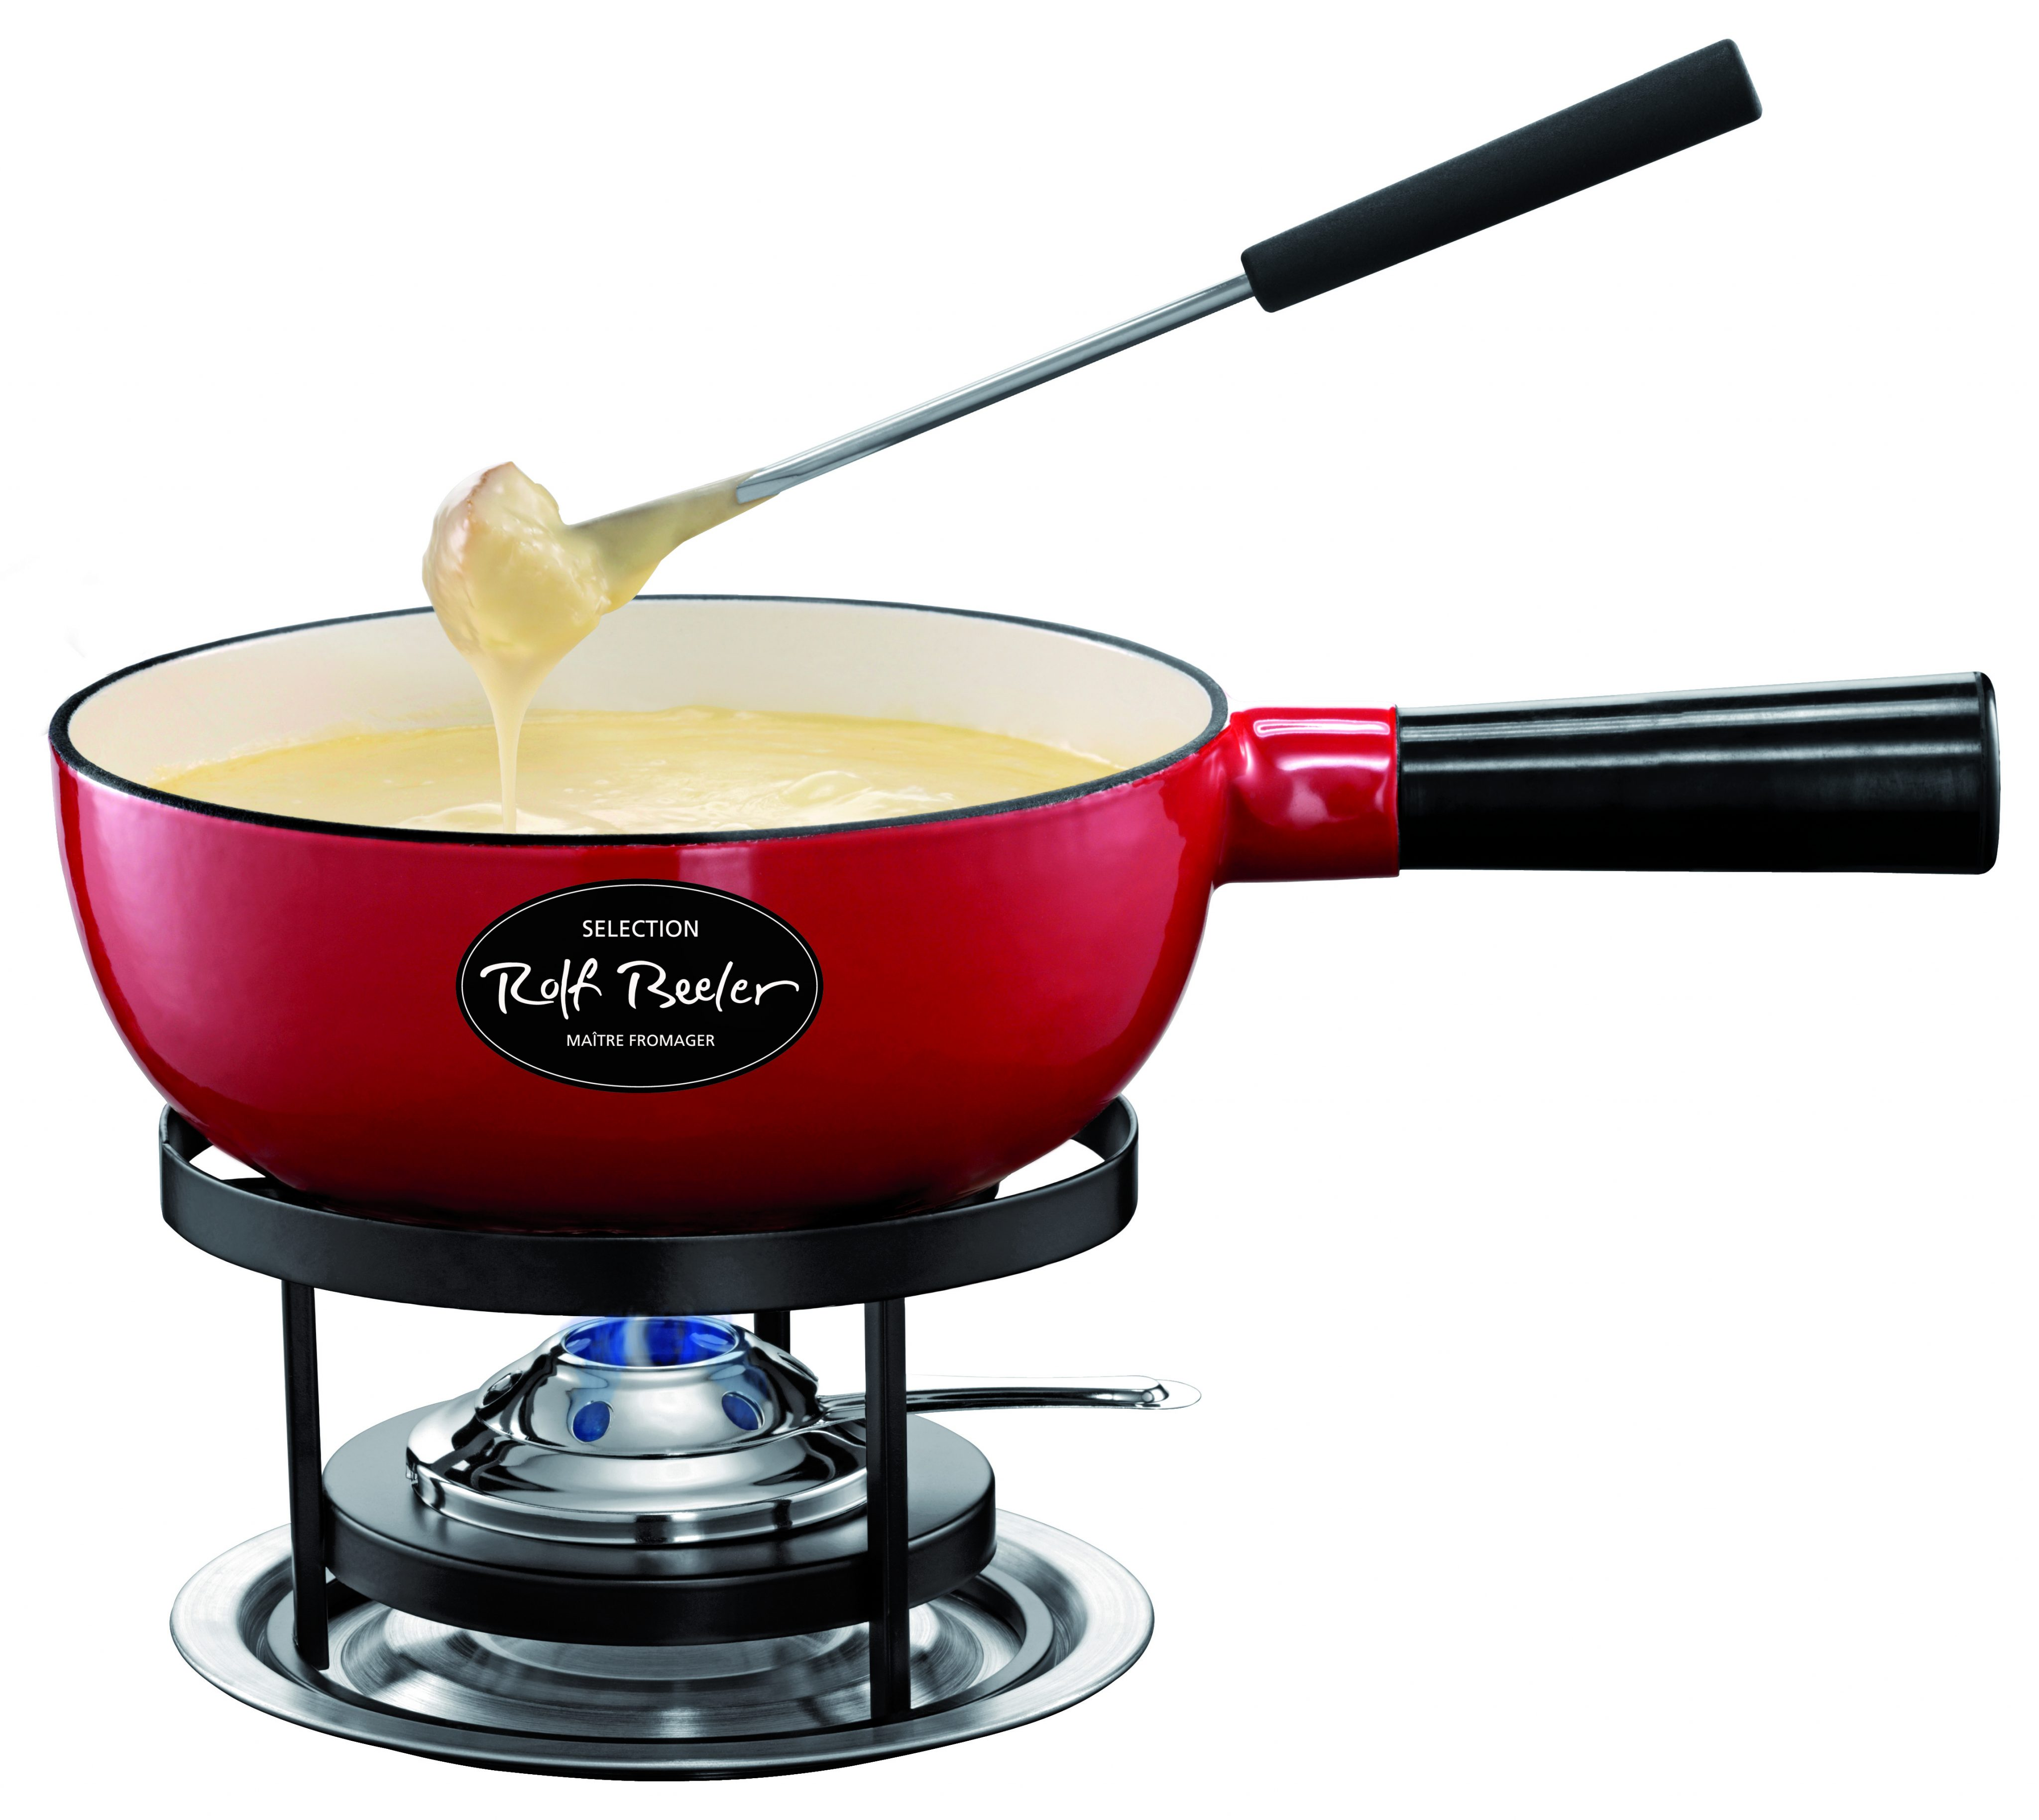 Rolf Beeler Fondue Set The Red Cow